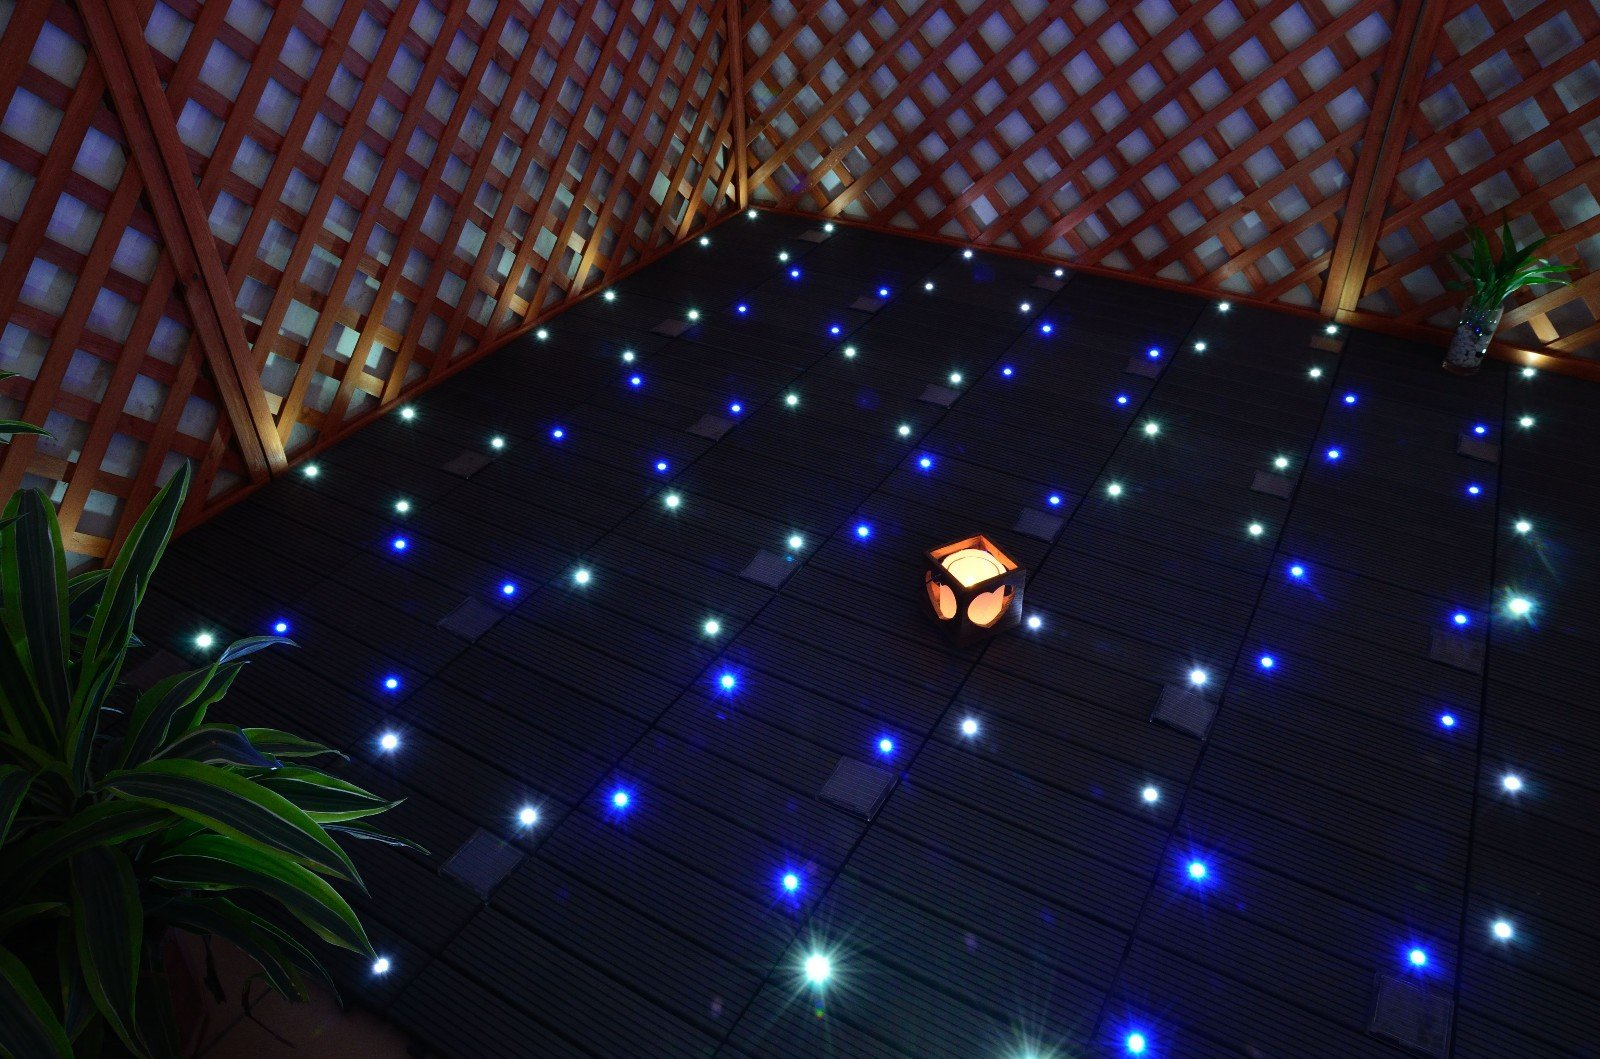 JIABANG eco-friendly snap together deck tiles garden lamp-7